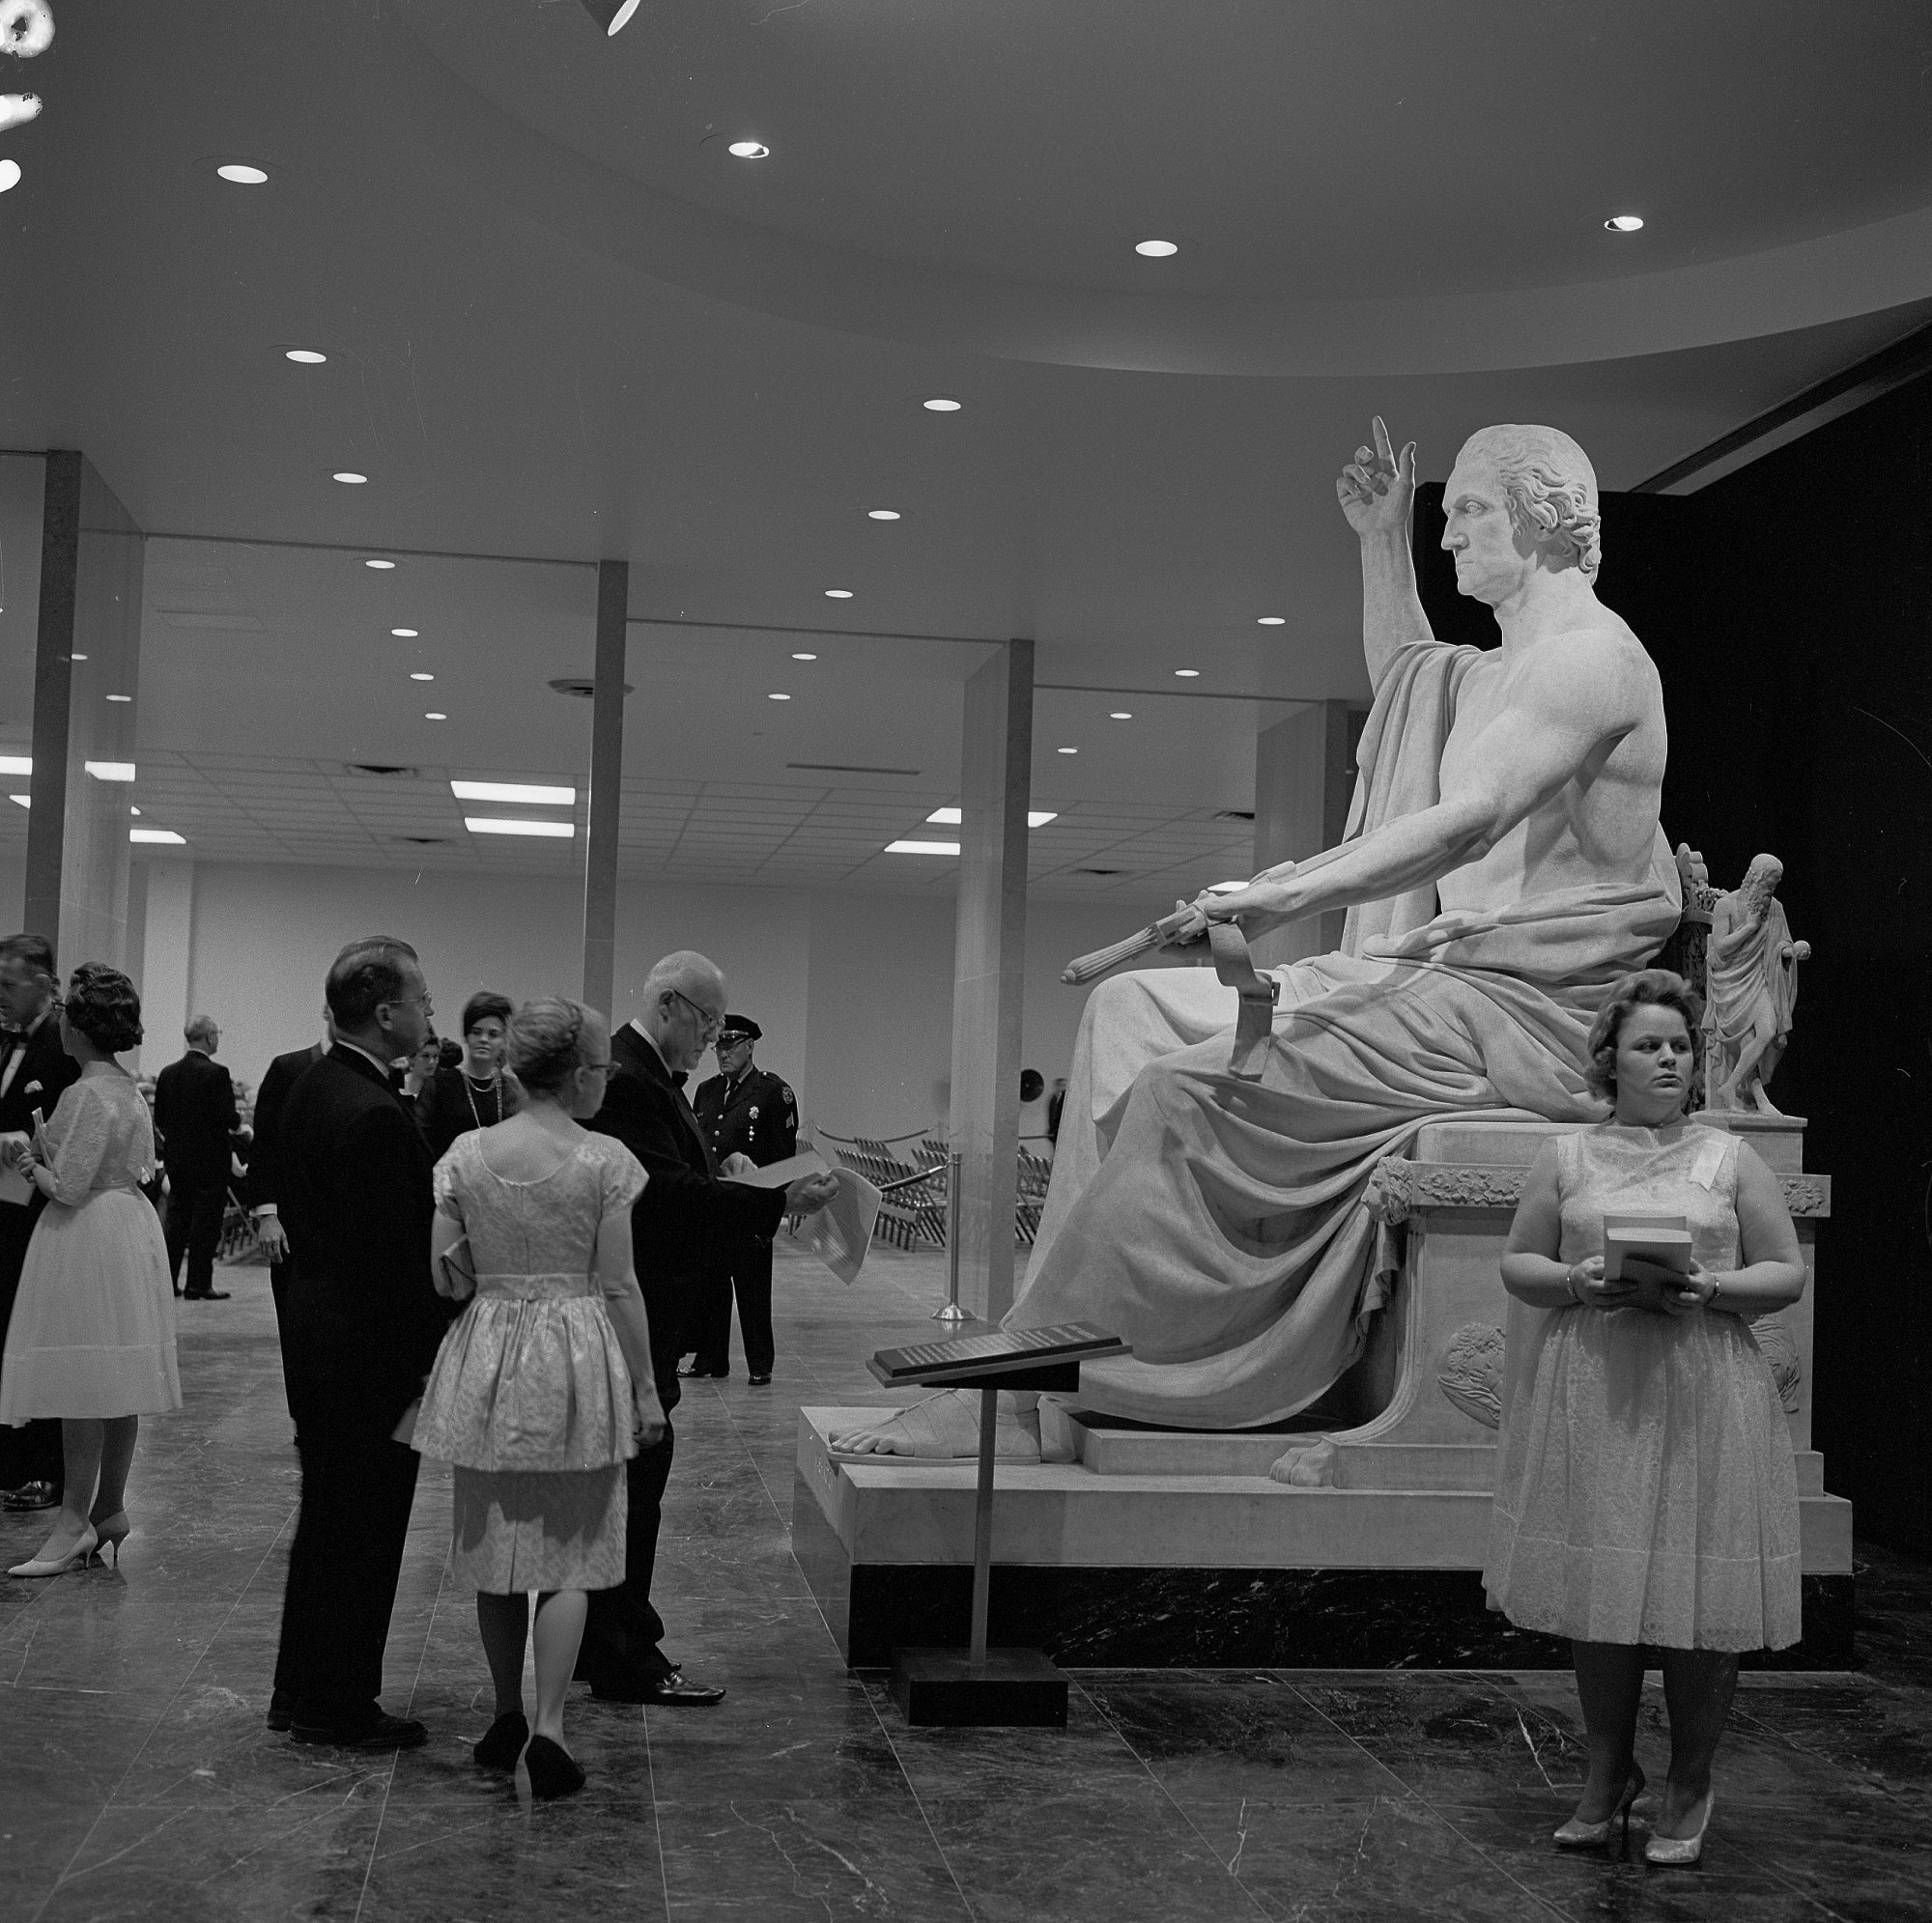 Visitors learn about Horatio Greenough's statue of George Washington at the museum dedication in 1964. Photo courtesy of the Smithsonian Institution Archives.